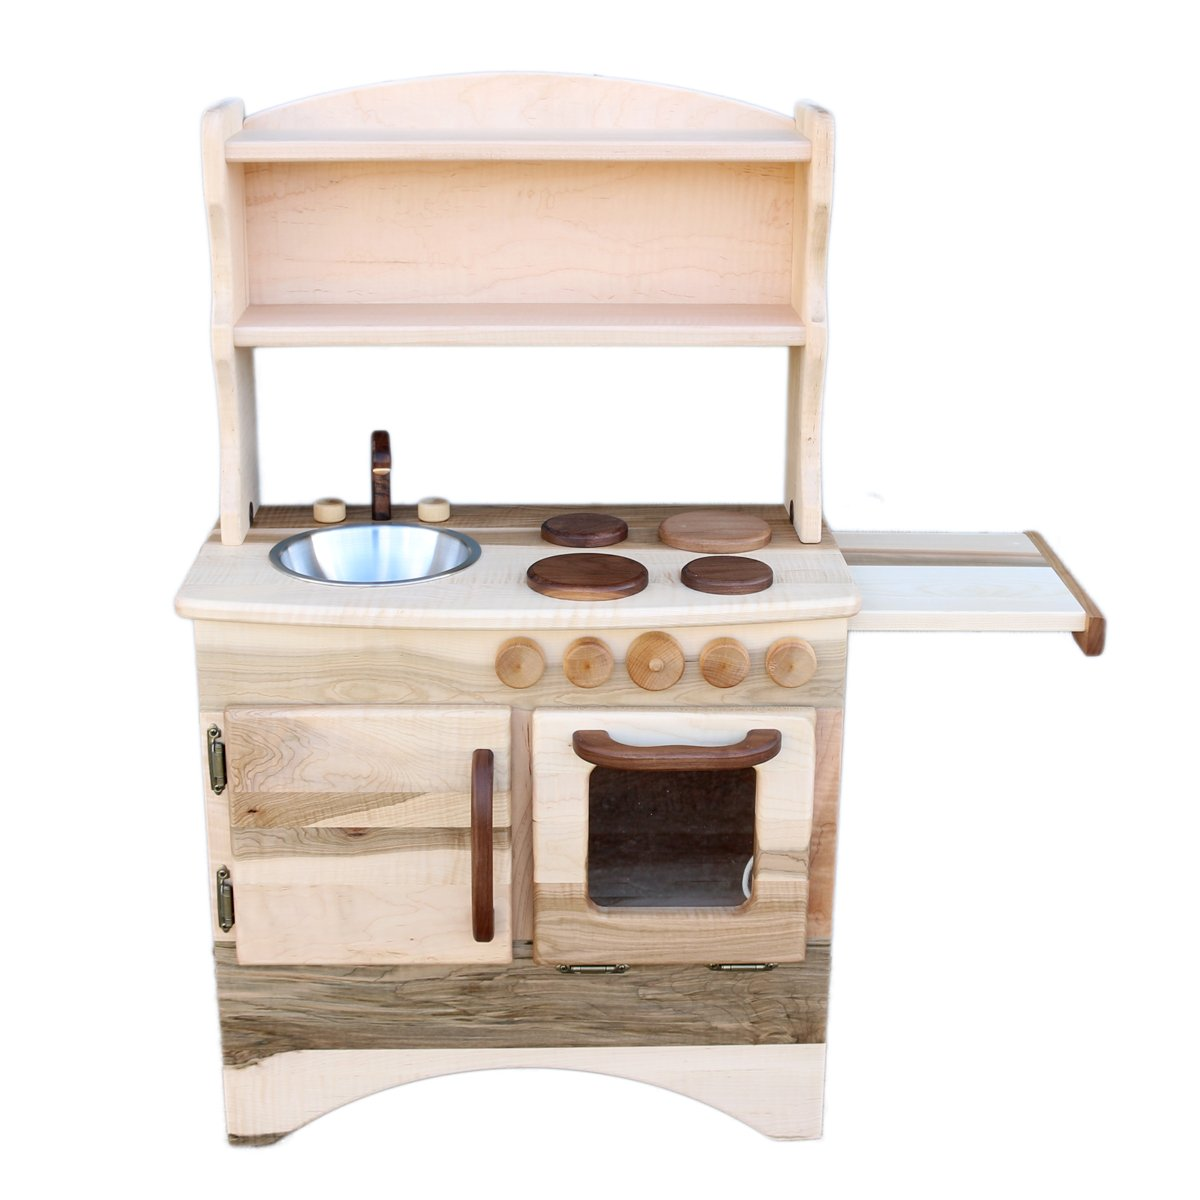 Camden Rose Simple Hearth (Child's Maple Wood Play Kitchen with Hutch) by Camden Rose